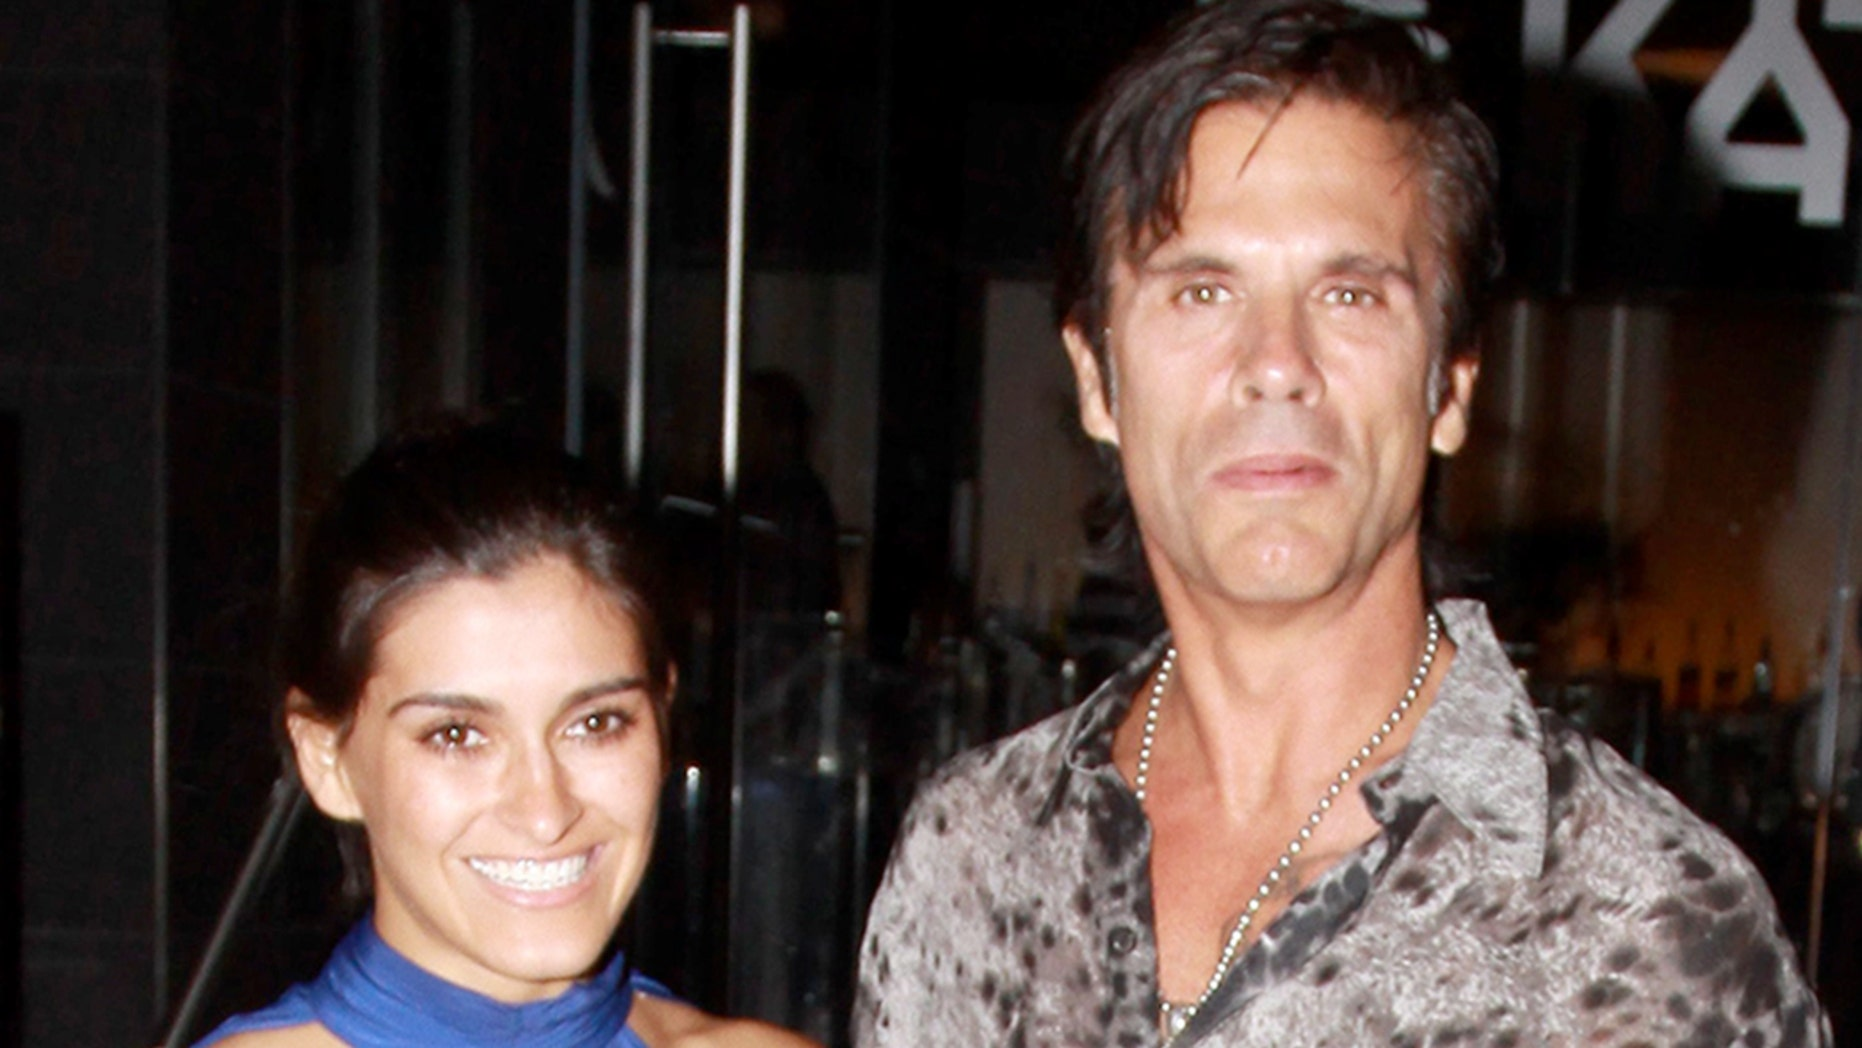 """Falcon Crest"" star Lorenzo Lamas filed for divorce from fifth wife Shawna Craig on June 29. The former couple is pictured here in November 2010."